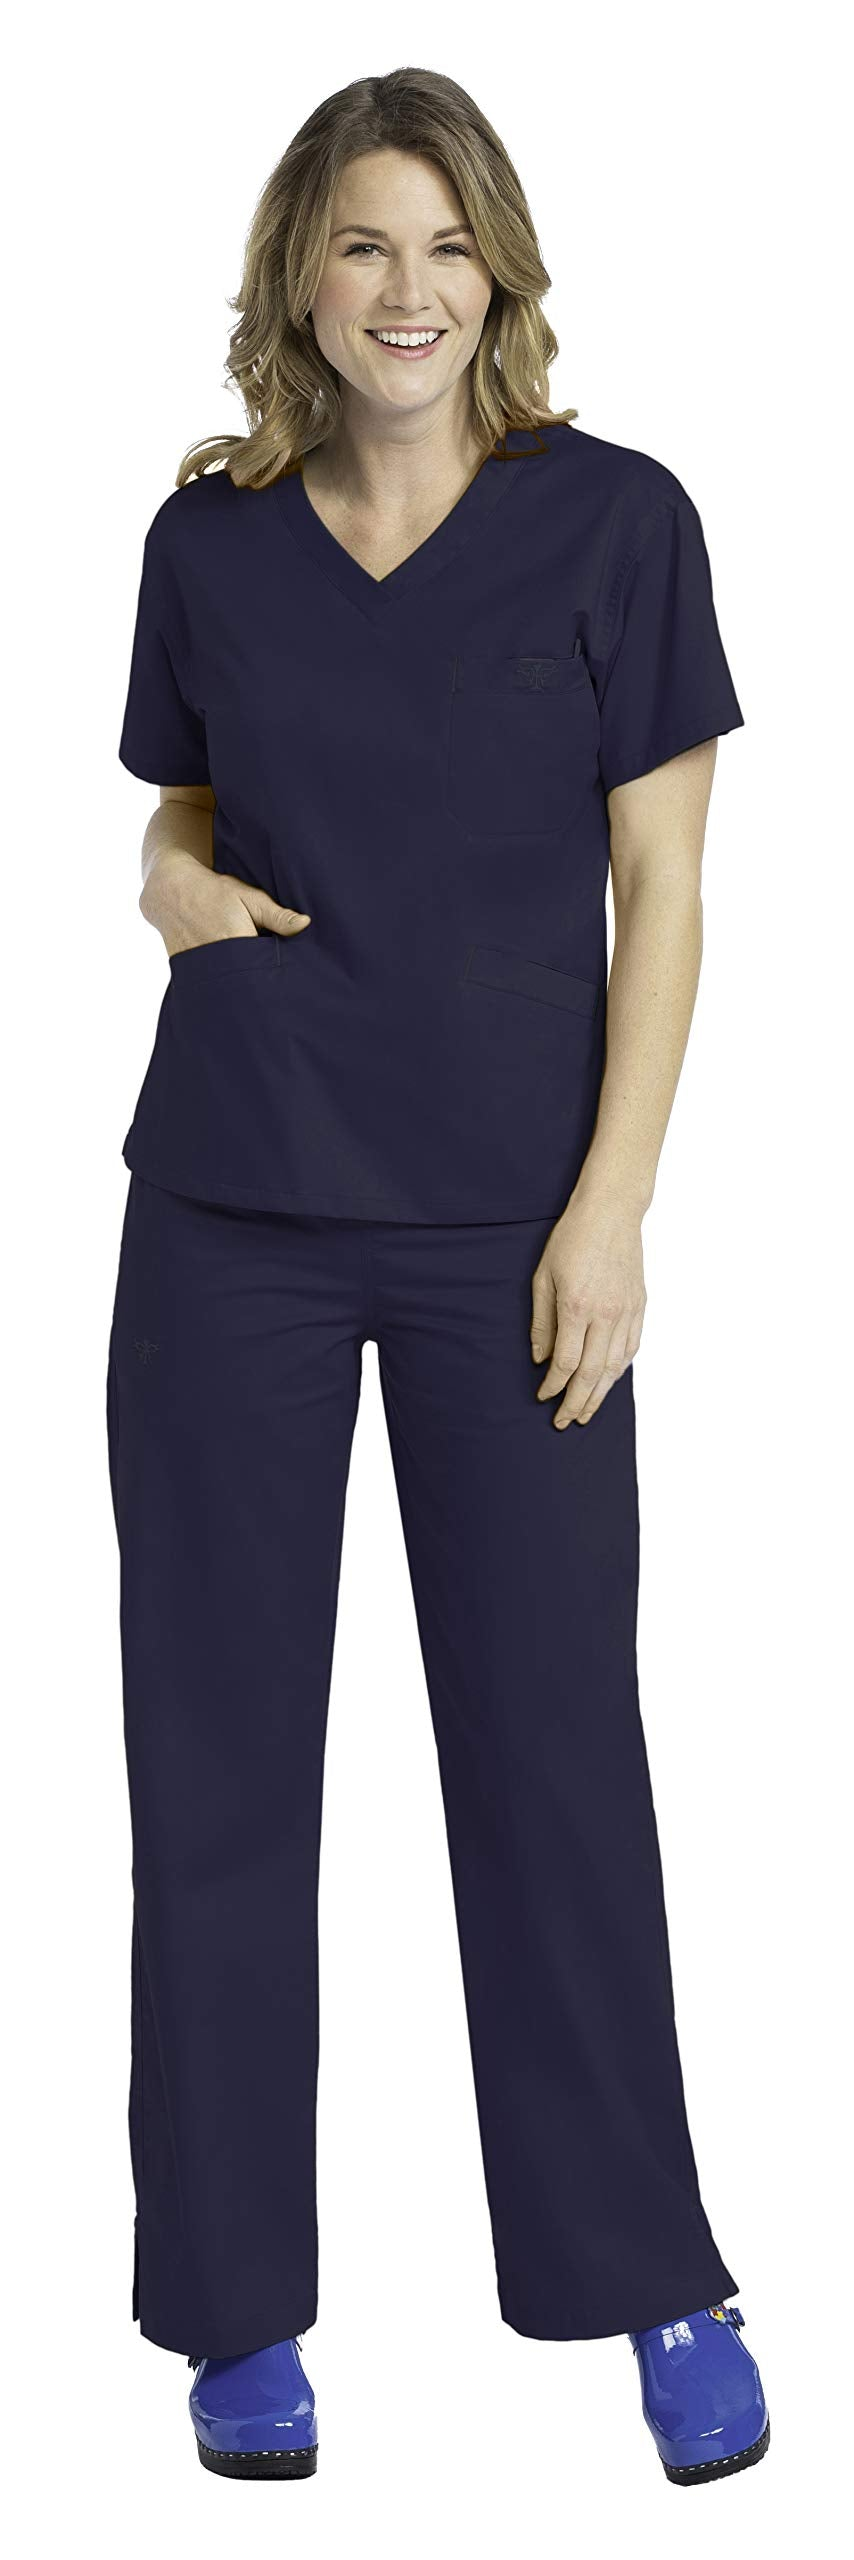 Med Couture Signature Women's Medical Uniforms Scrub Set Bundle- 8403 V-Neck Top & 8705 Drawstring Pants (New Navy - Small/Small Petite)